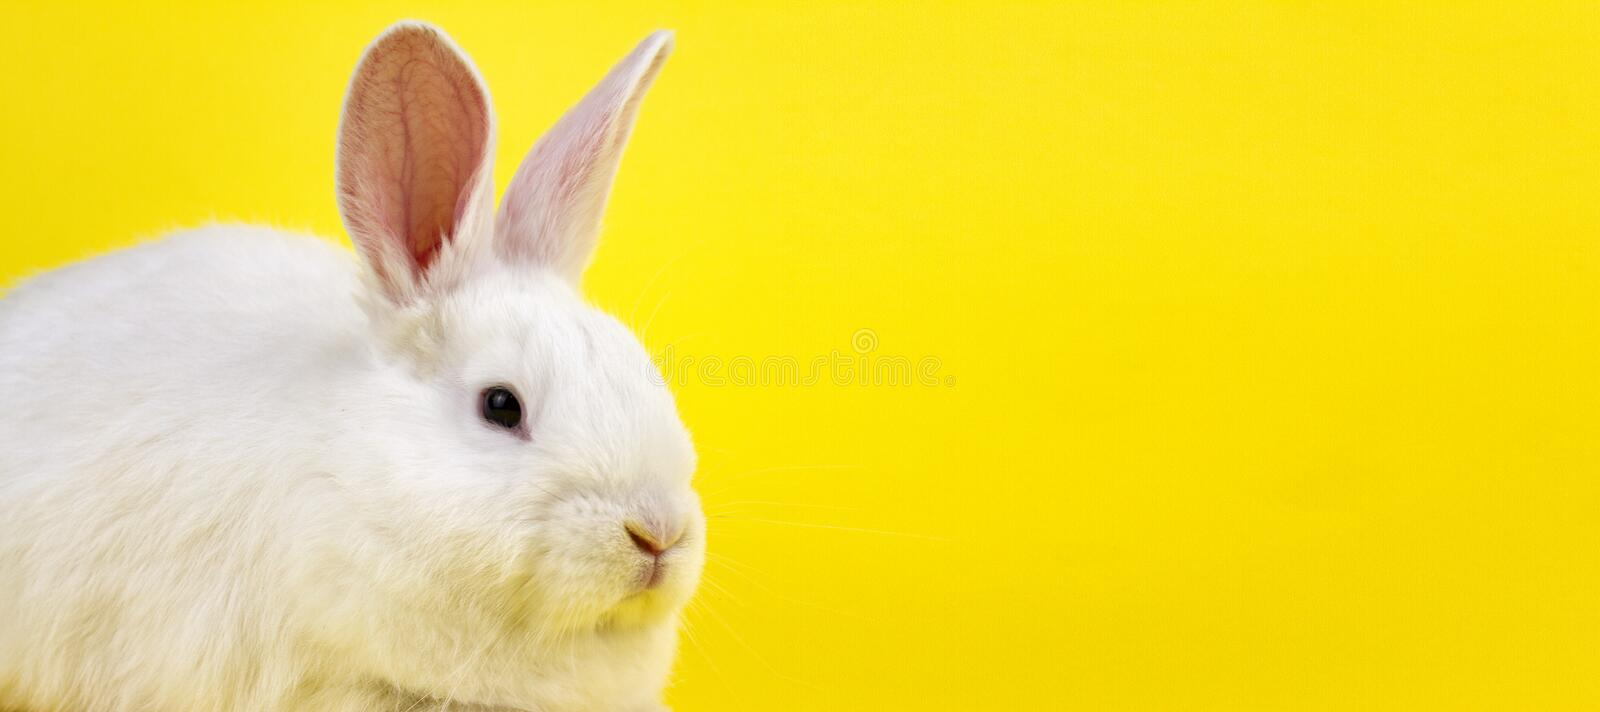 A small white rabbit on a pastel yellow background, an Easter Bunny for Easter royalty free stock photography